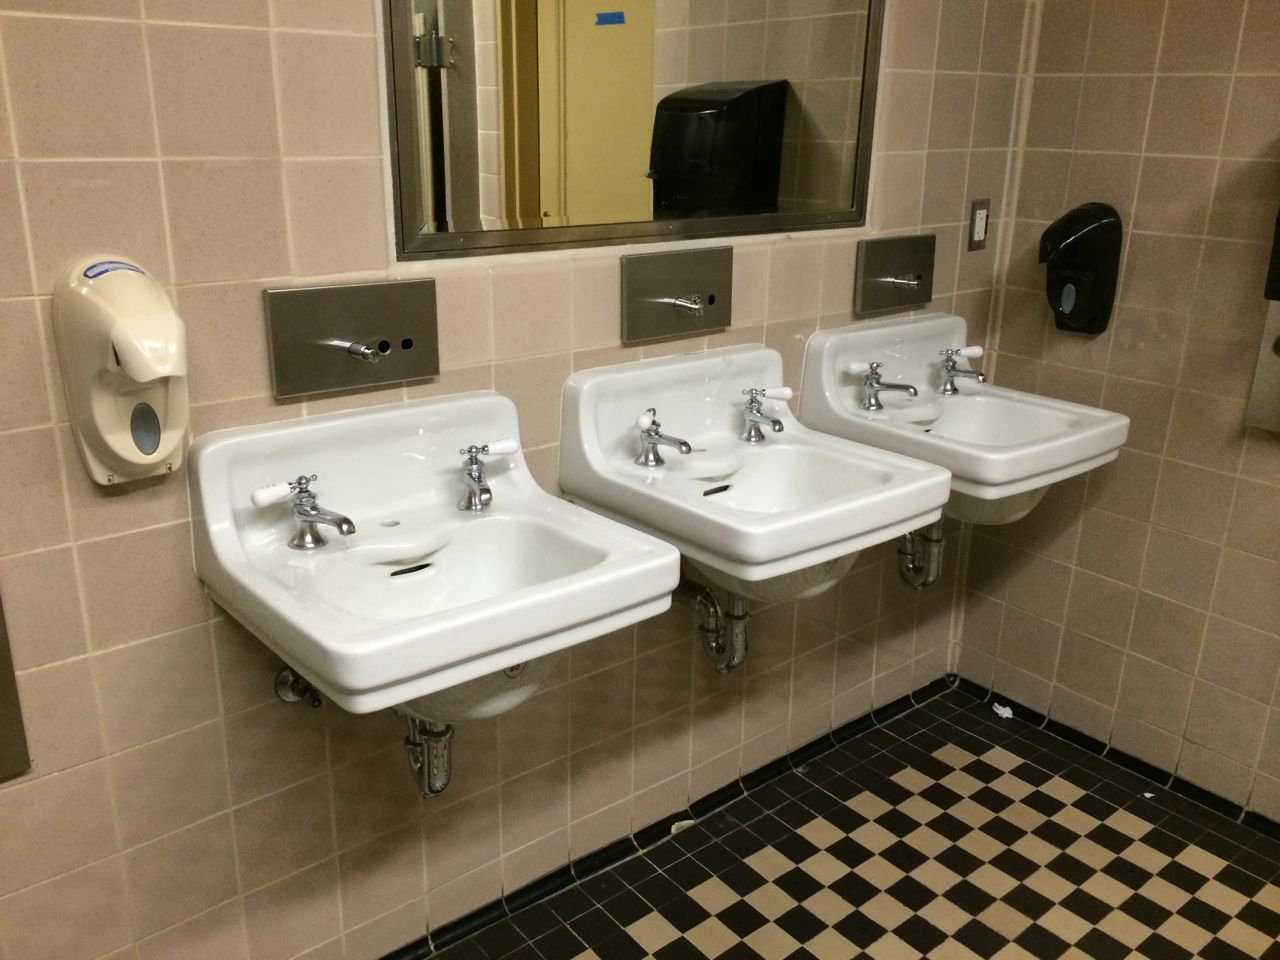 Public Bathroom Sink bad restroom design example – geeky girl engineer